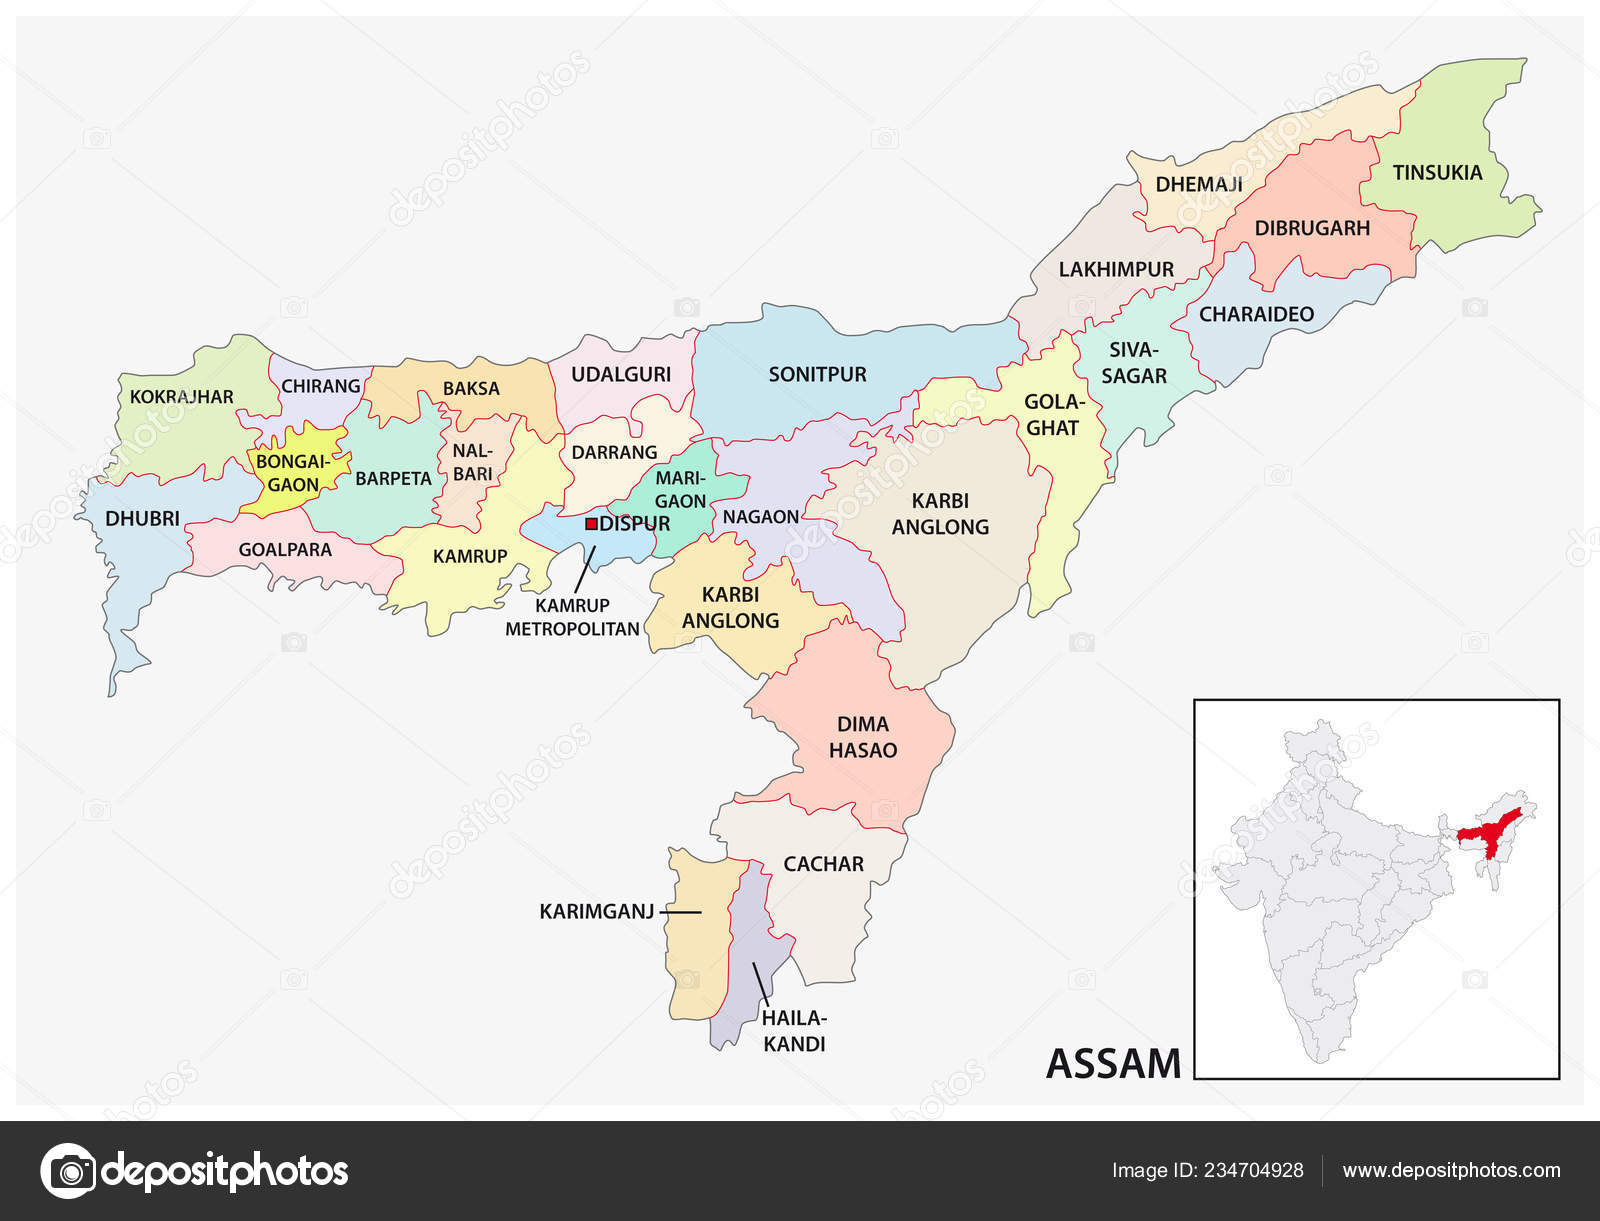 Administrative Political Map Indian State am India ... on great britain map, u.s. regions map, arunachal pradesh, french regions map, tamil nadu map, state capitals map, tonga map, iran map, uttar pradesh, indian states and capitals, brazil map, european nations map, new delhi, tamil nadu, cyber world map, india map, indiana county map, jammu and kashmir, maharashtra map, himachal pradesh, bangladesh map, cape of good hope map, andhra pradesh map, indiana state map, andaman and nicobar islands, illinois-indiana map, saudi arabia map, andhra pradesh,